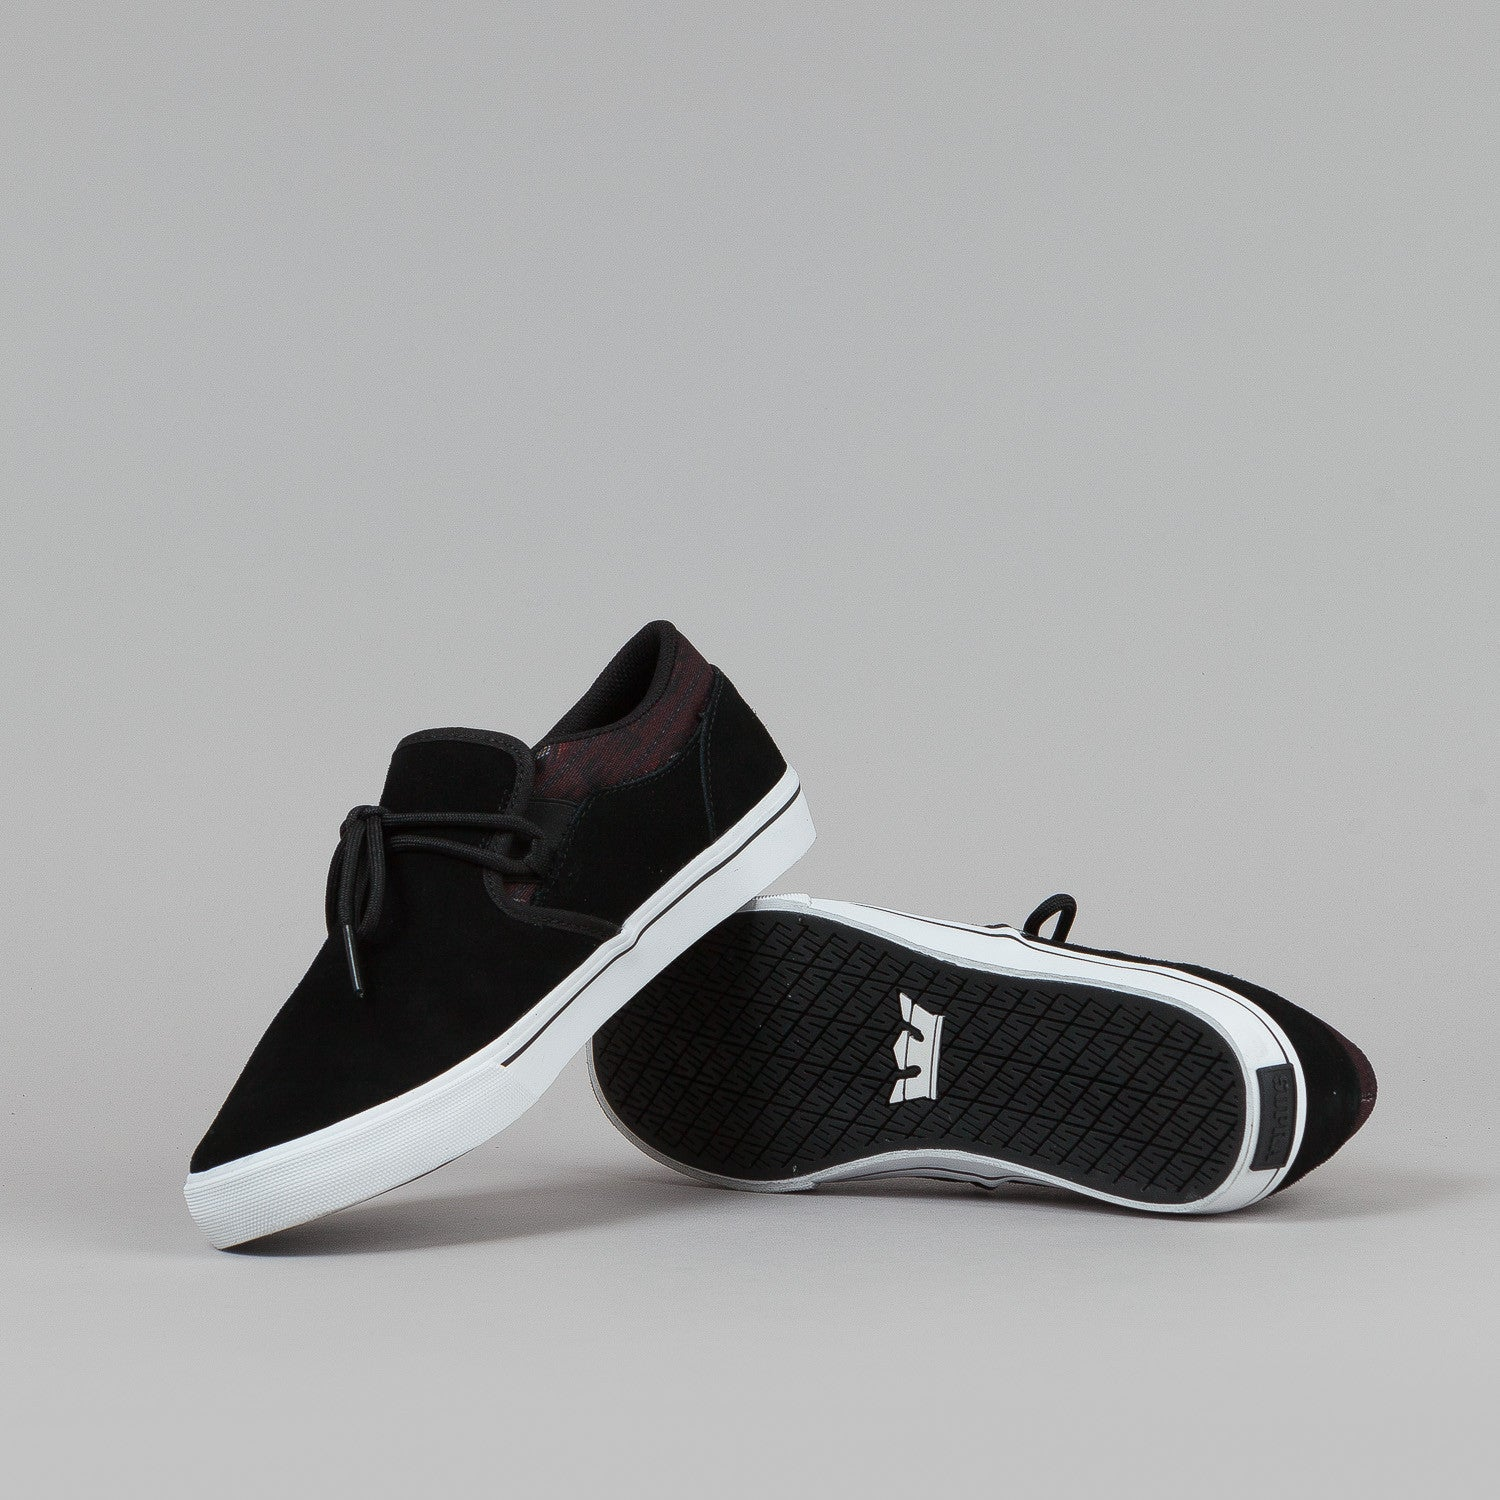 Supra Cuba Shoes - Black / Southwest / White